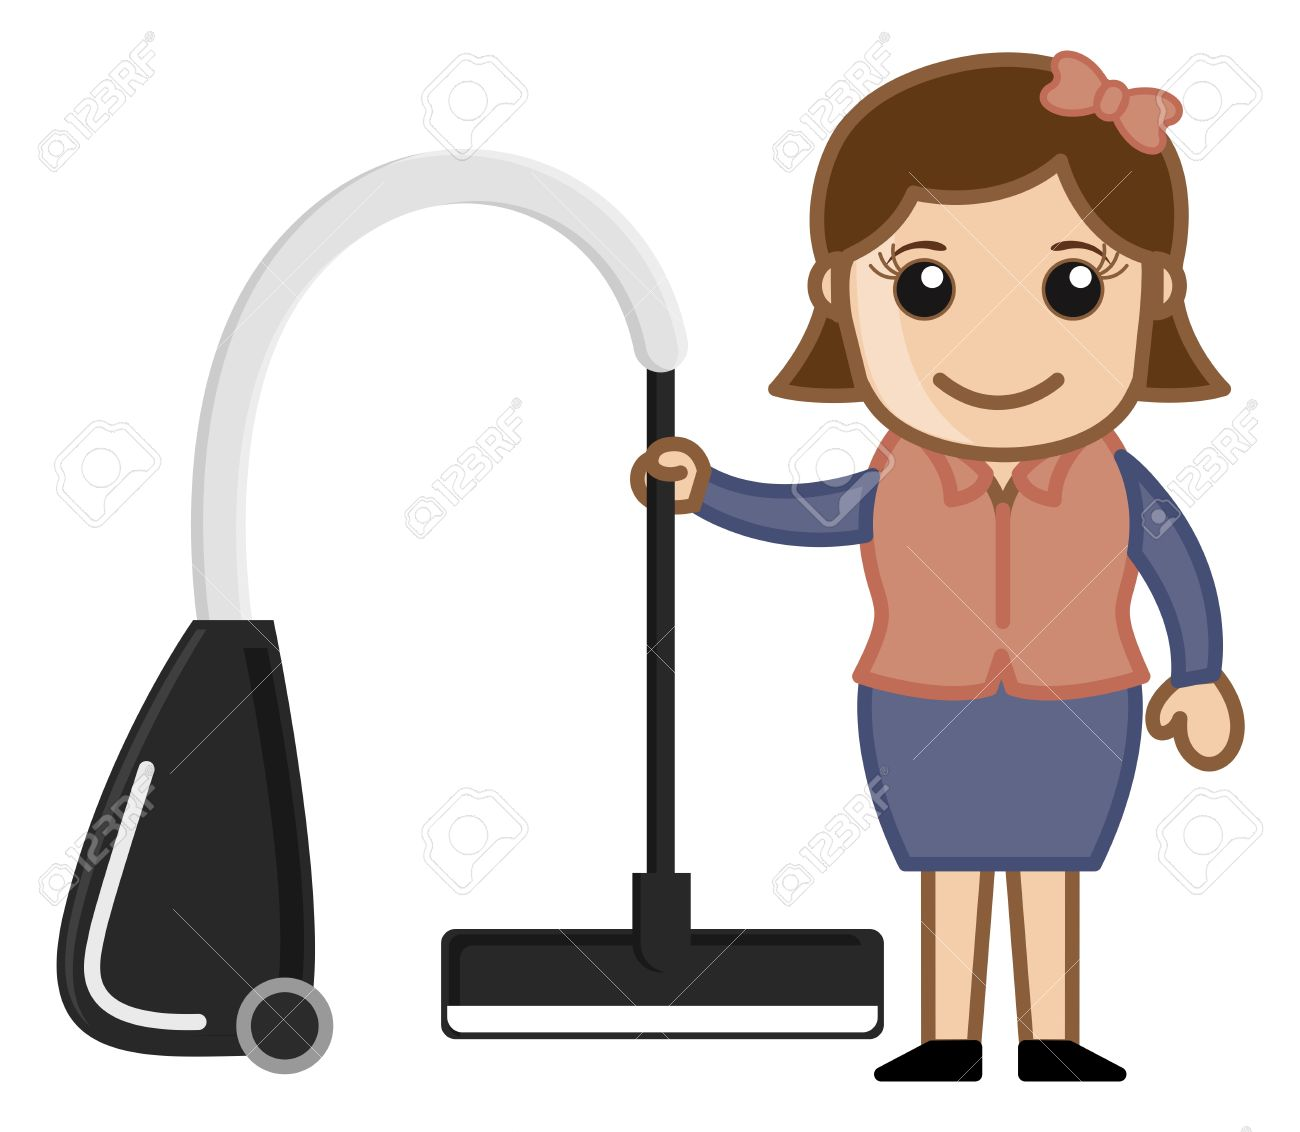 Vacuum cleaner clipart vacuum cleaner clip art - Vector Woman With Vacuum Cleaner